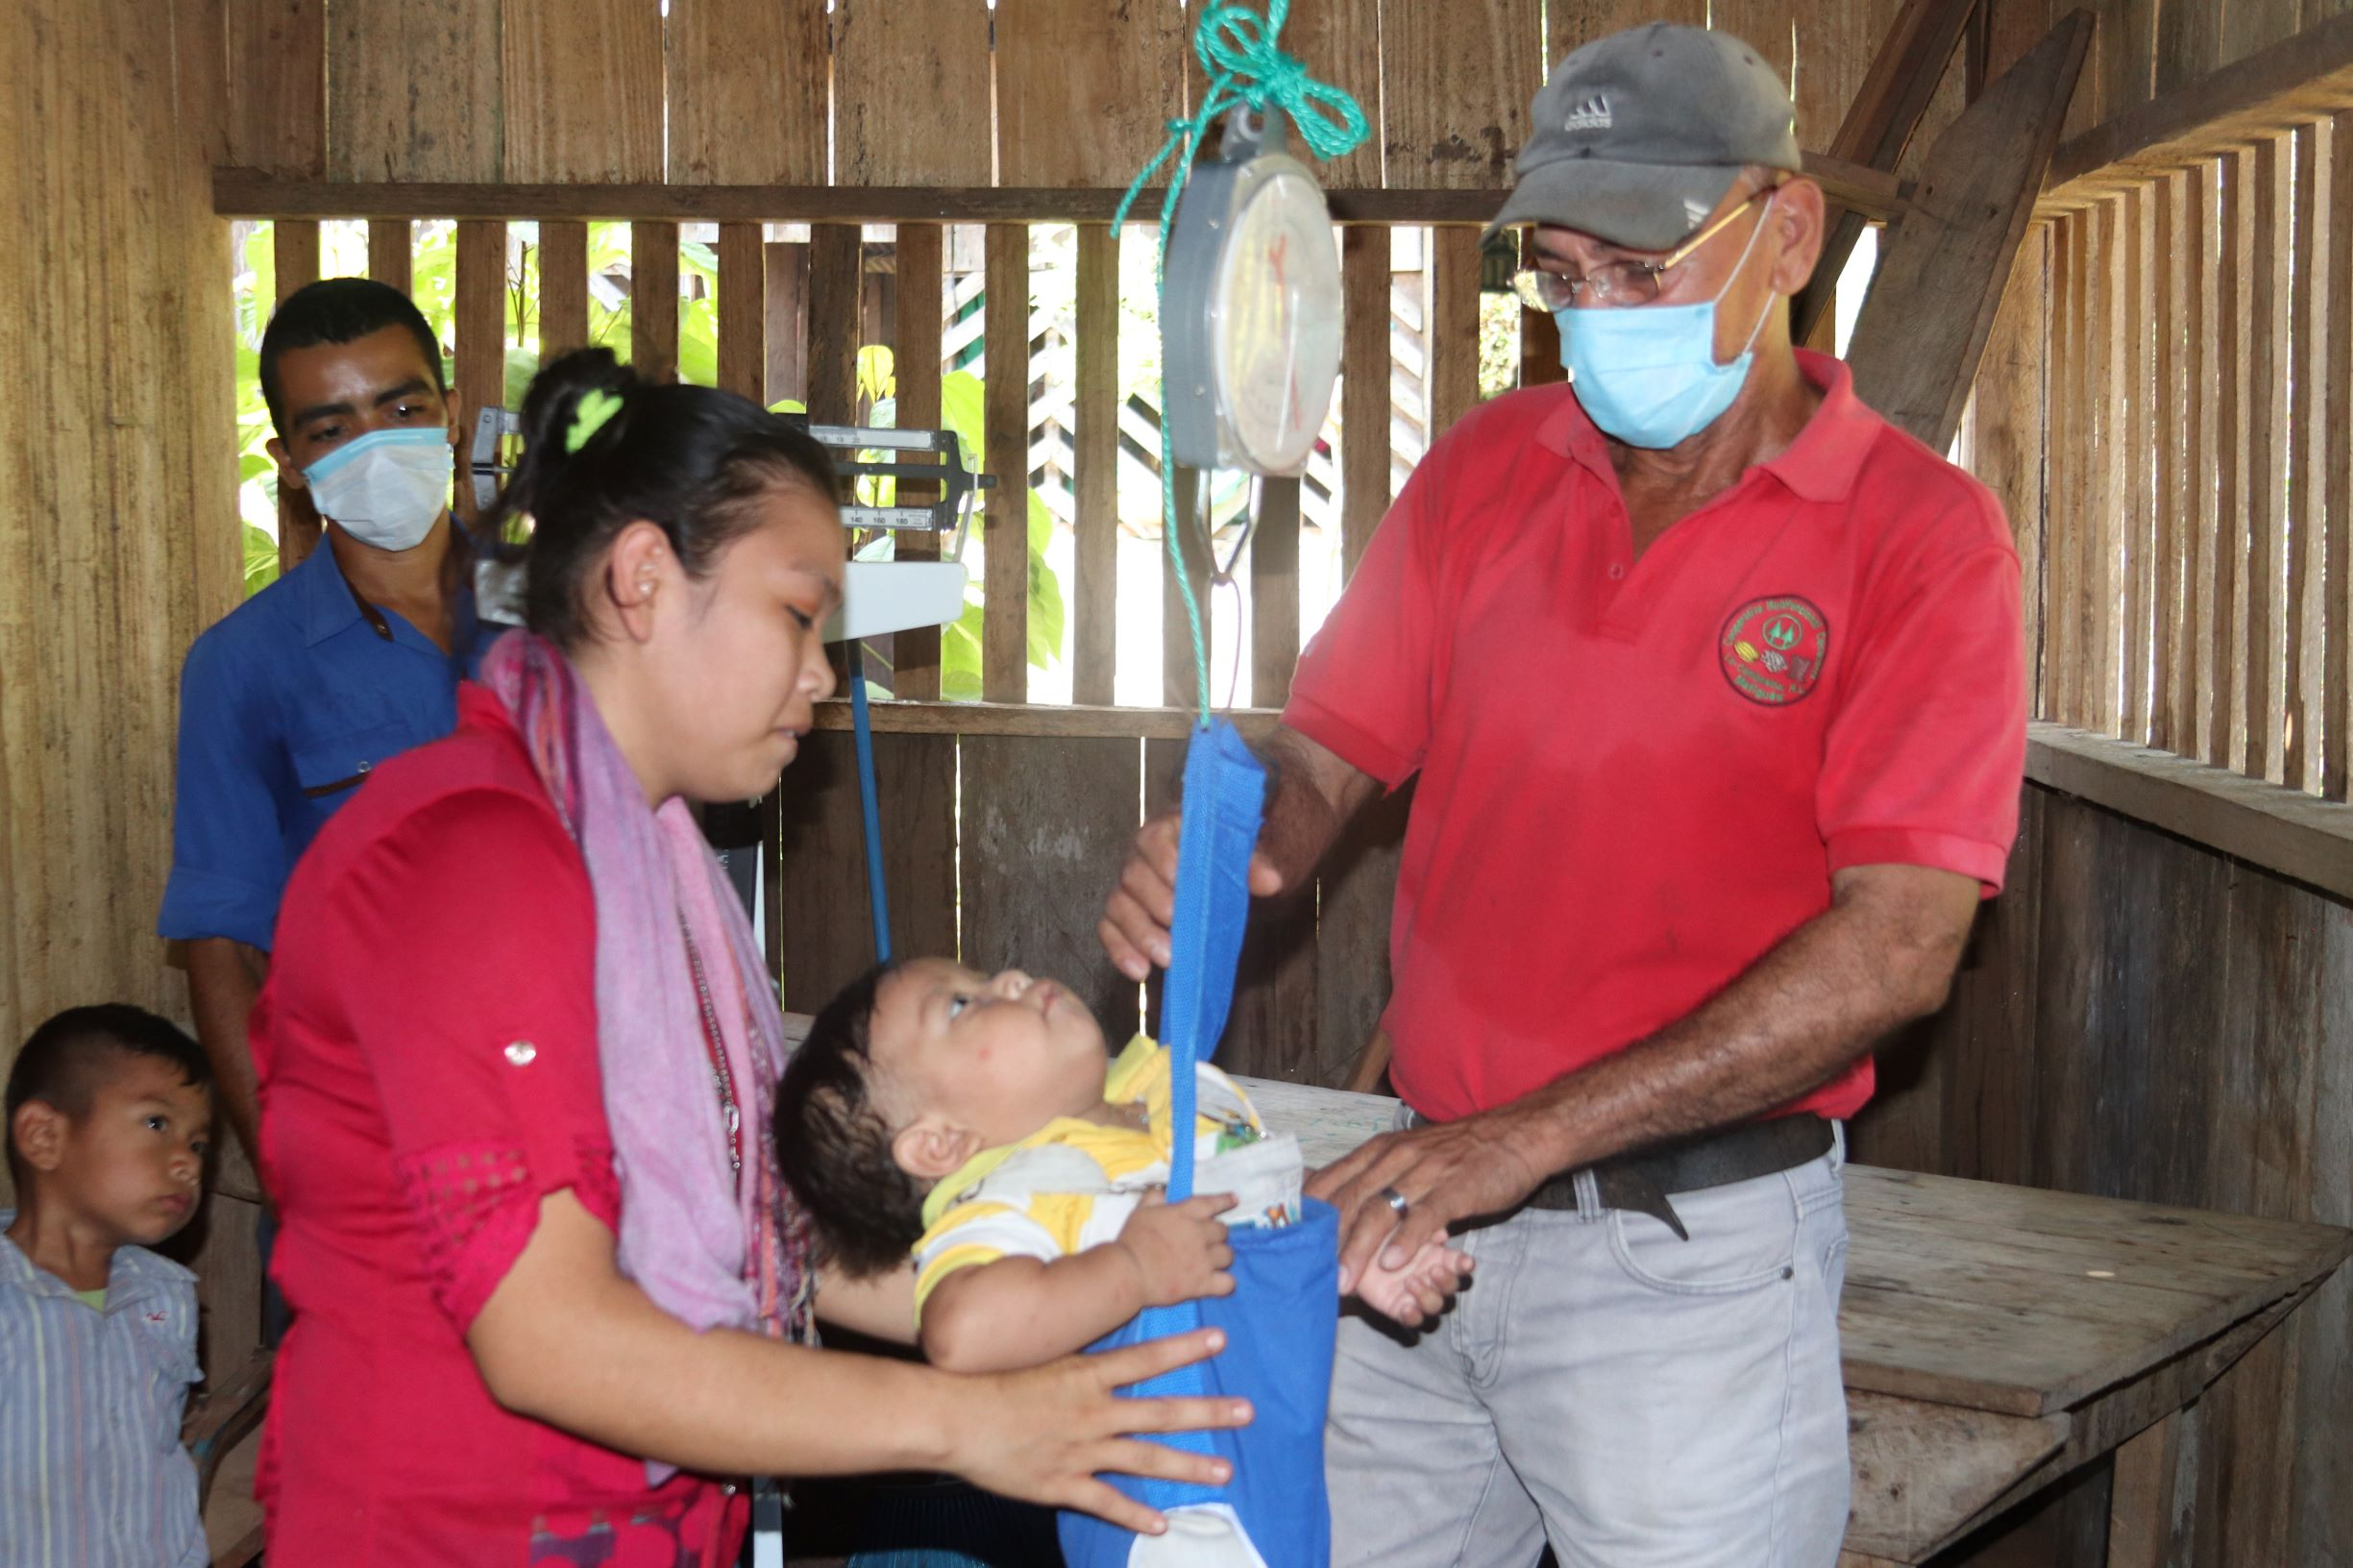 A health worker weighs a baby using a hanging scale.